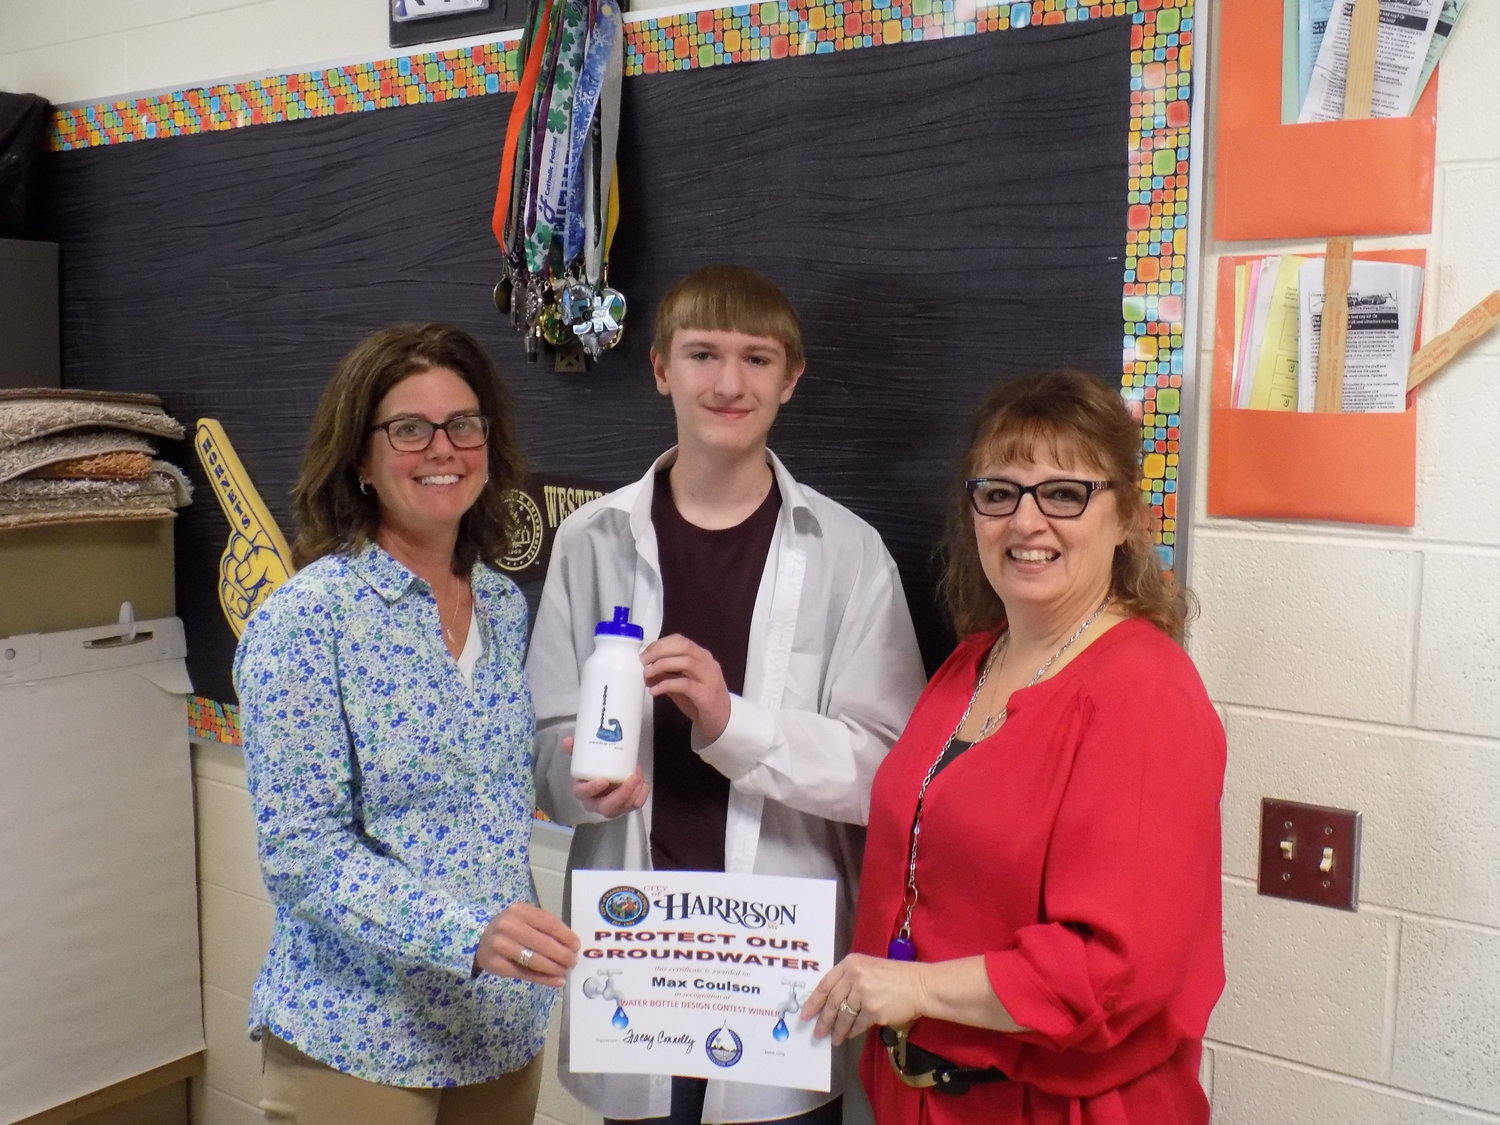 Joddie Gould, left, and Tracey Connelly, right, award Max Coulson his certificate as winner of the Water Bottle Design Contest held at Harrison Middle School.